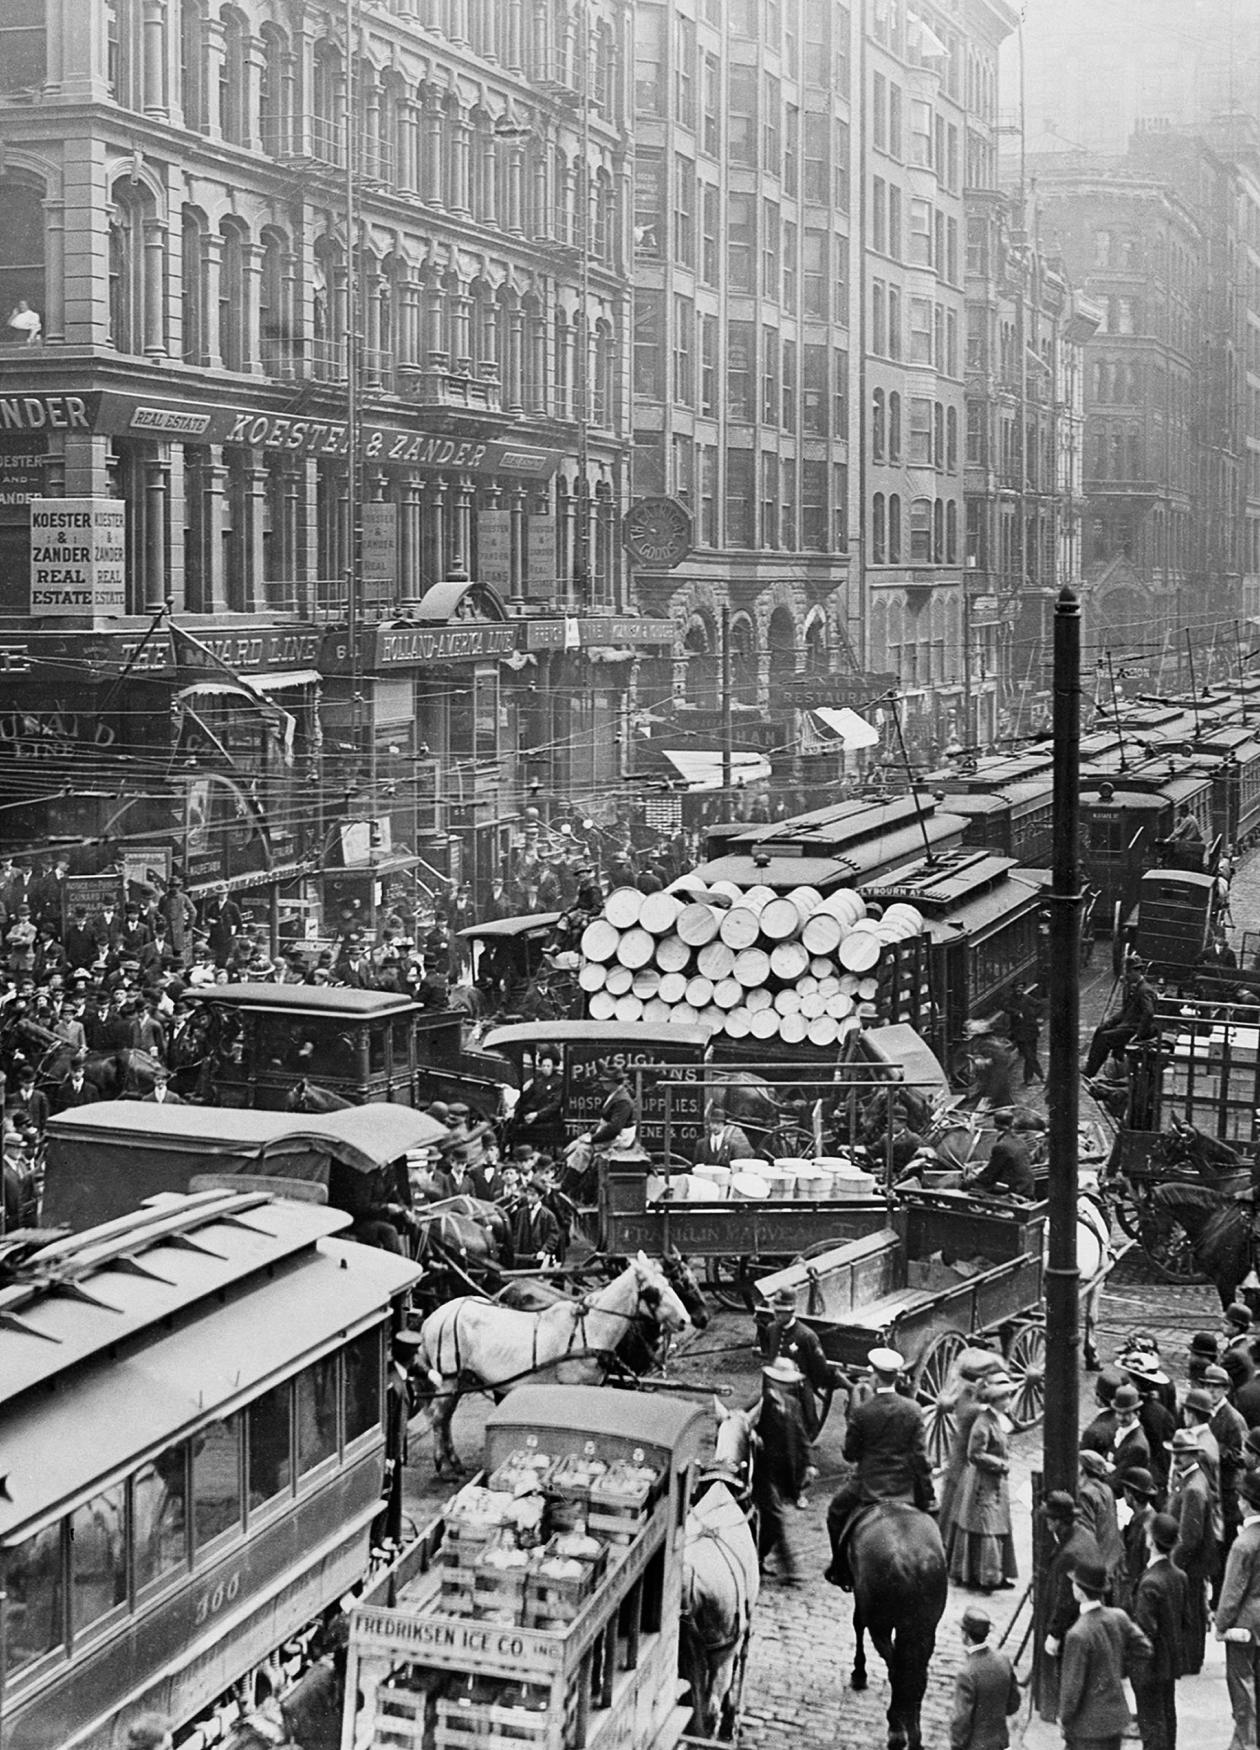 Streetcars, trucks and cars fight to cross an intersection, while crowds of pedestrians move around the gridlock